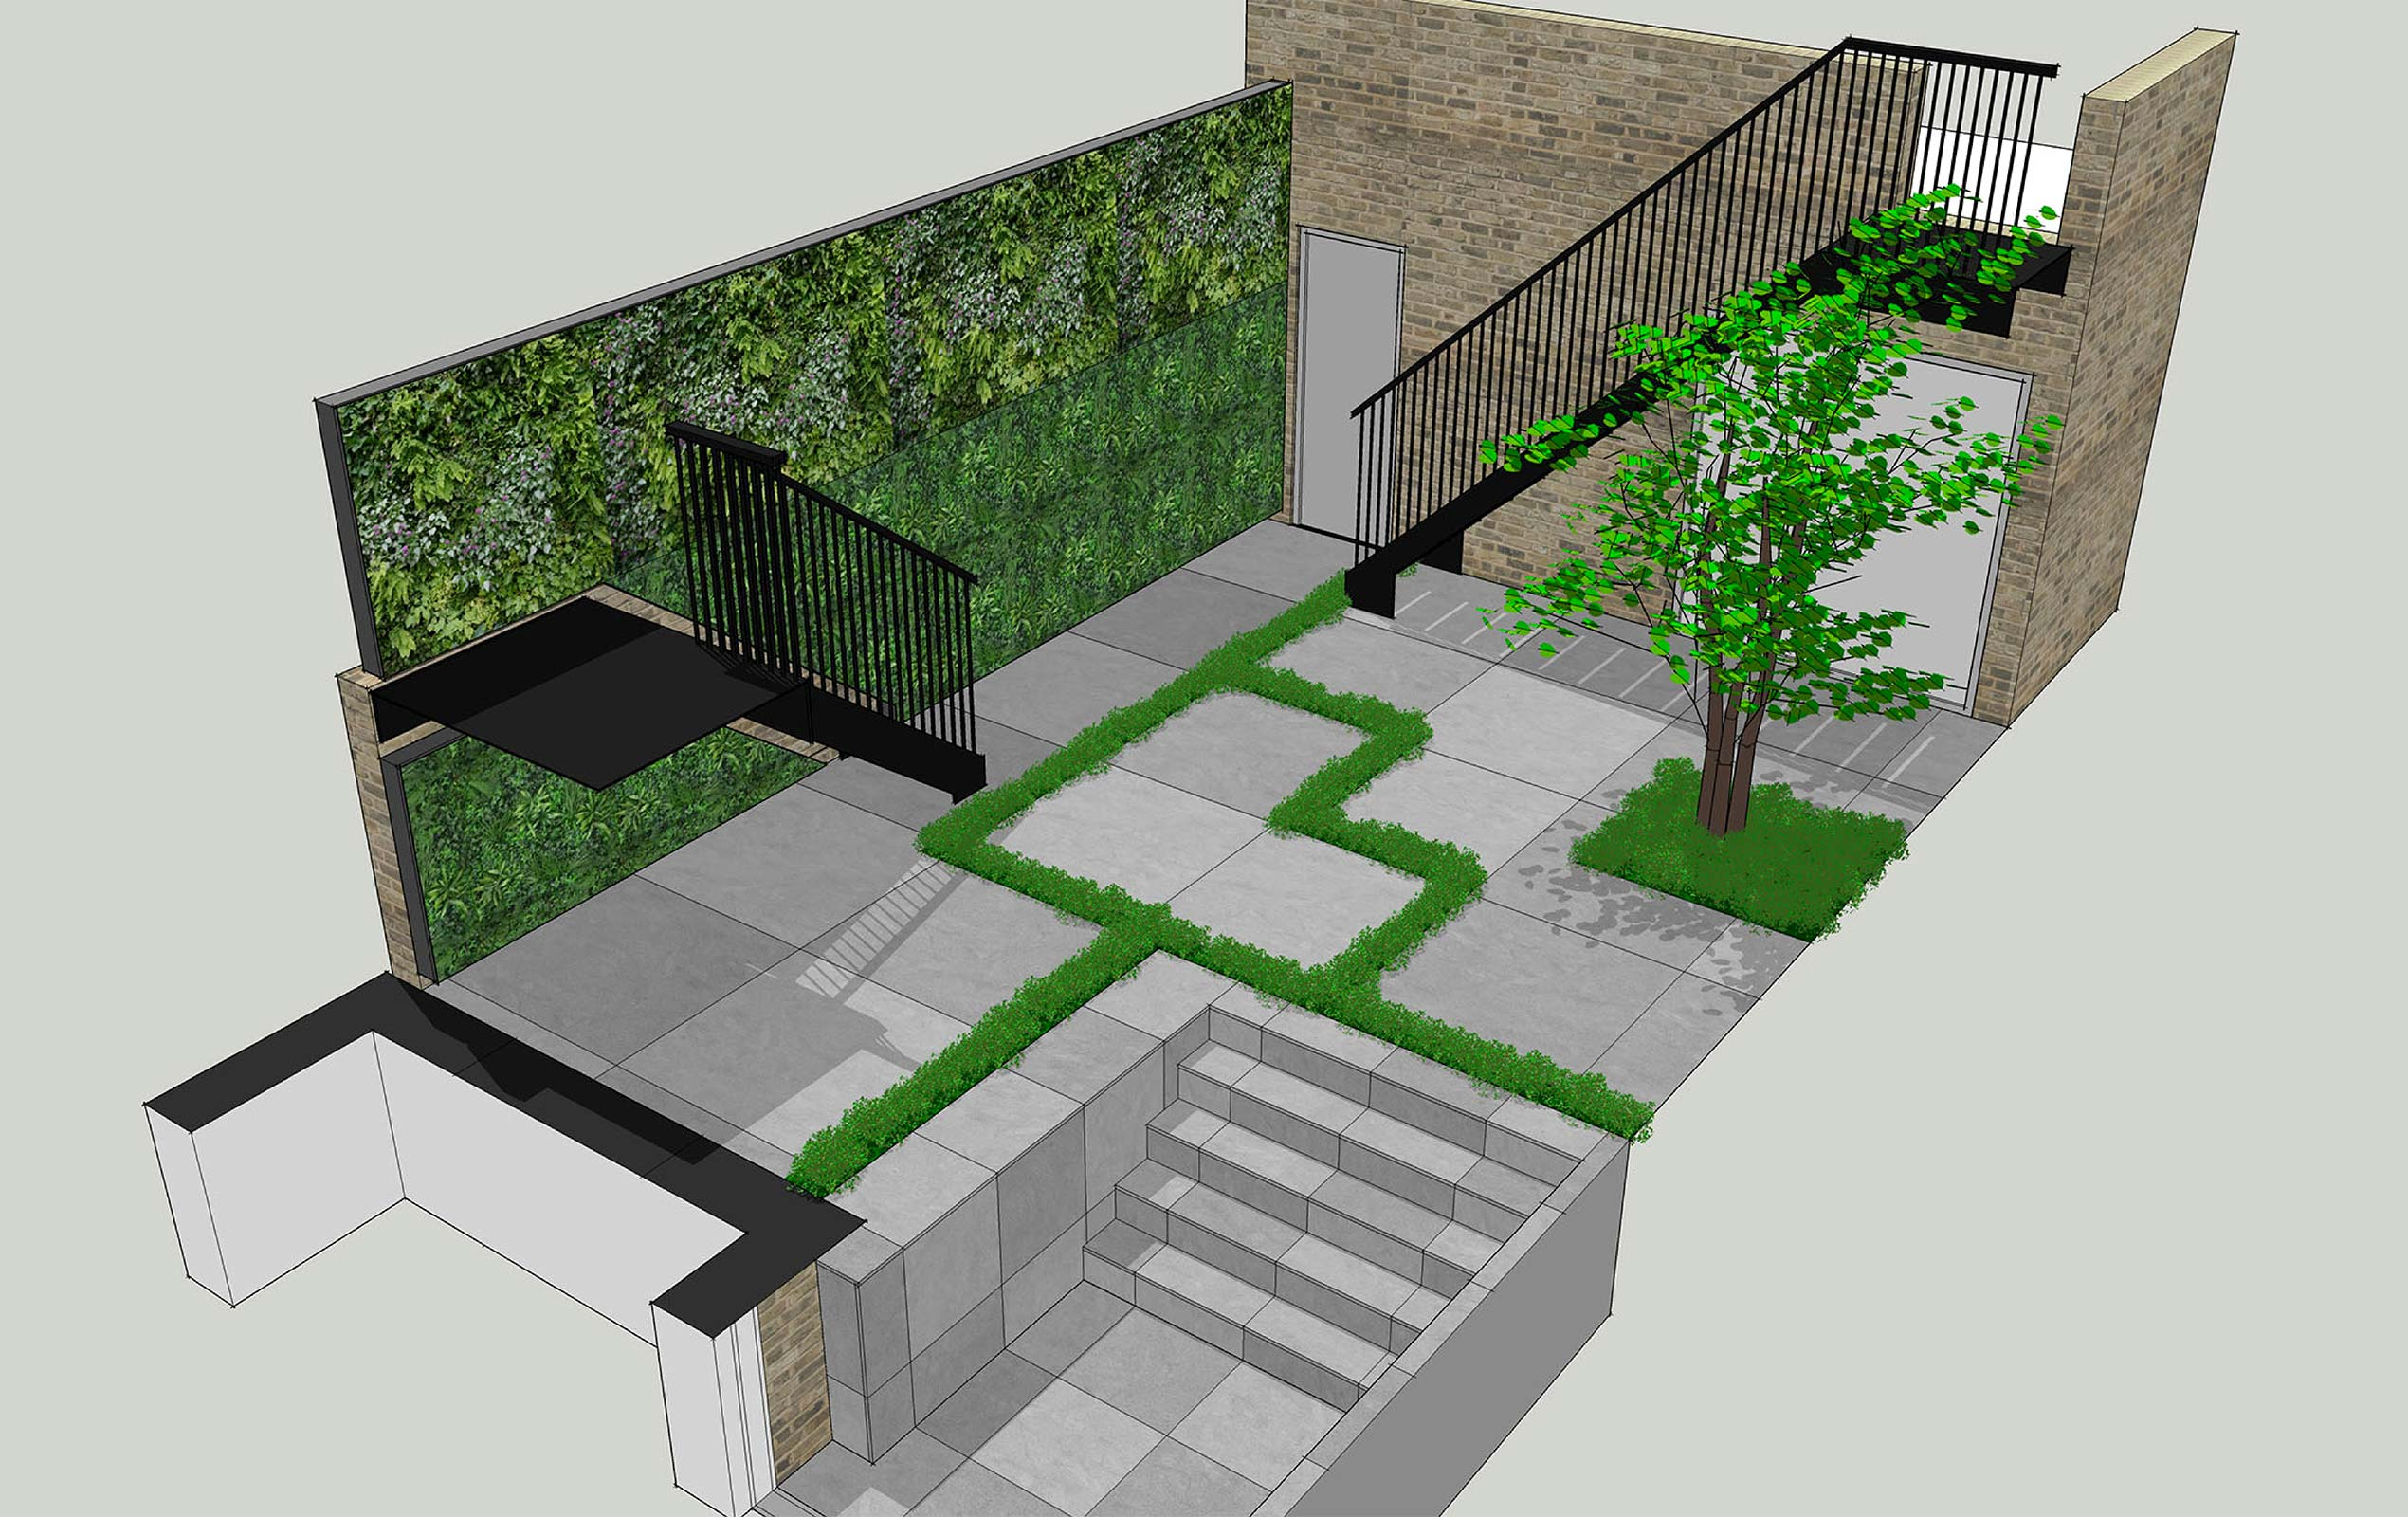 Knightsbridge garden above swimming pool work visual